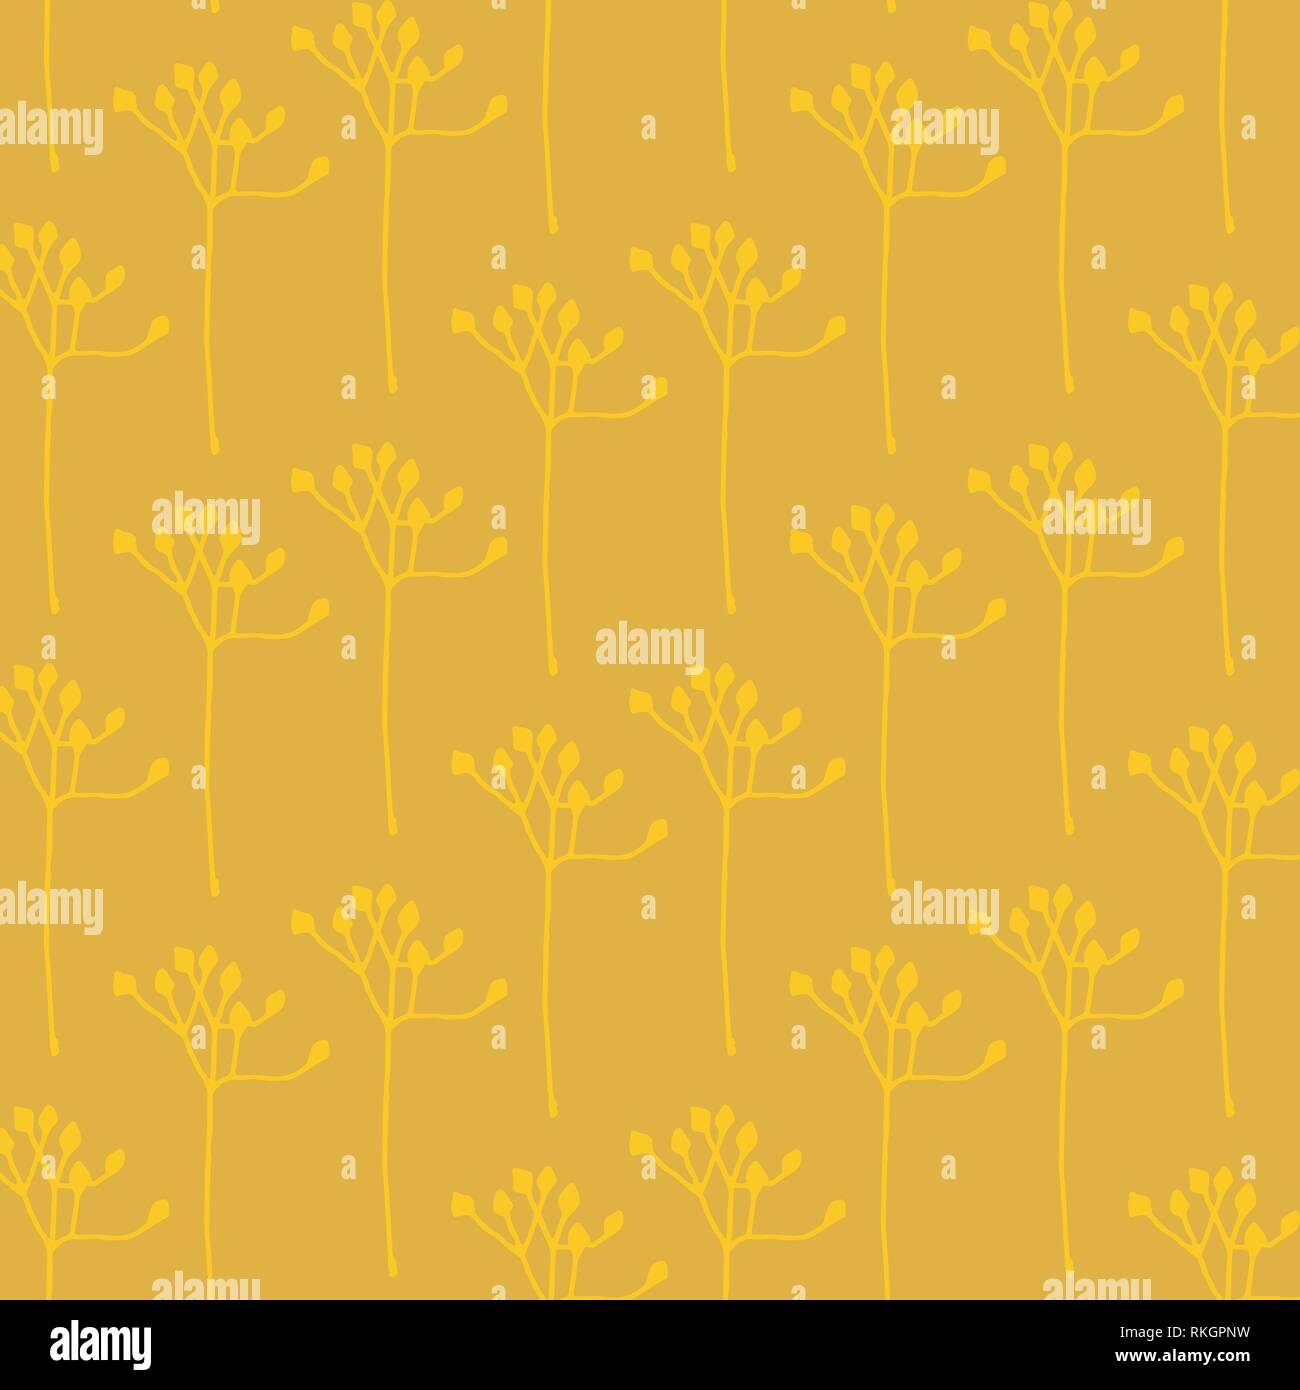 Hand drawn abstract floral vector pattern in gold and yellow colors palett - Stock Image